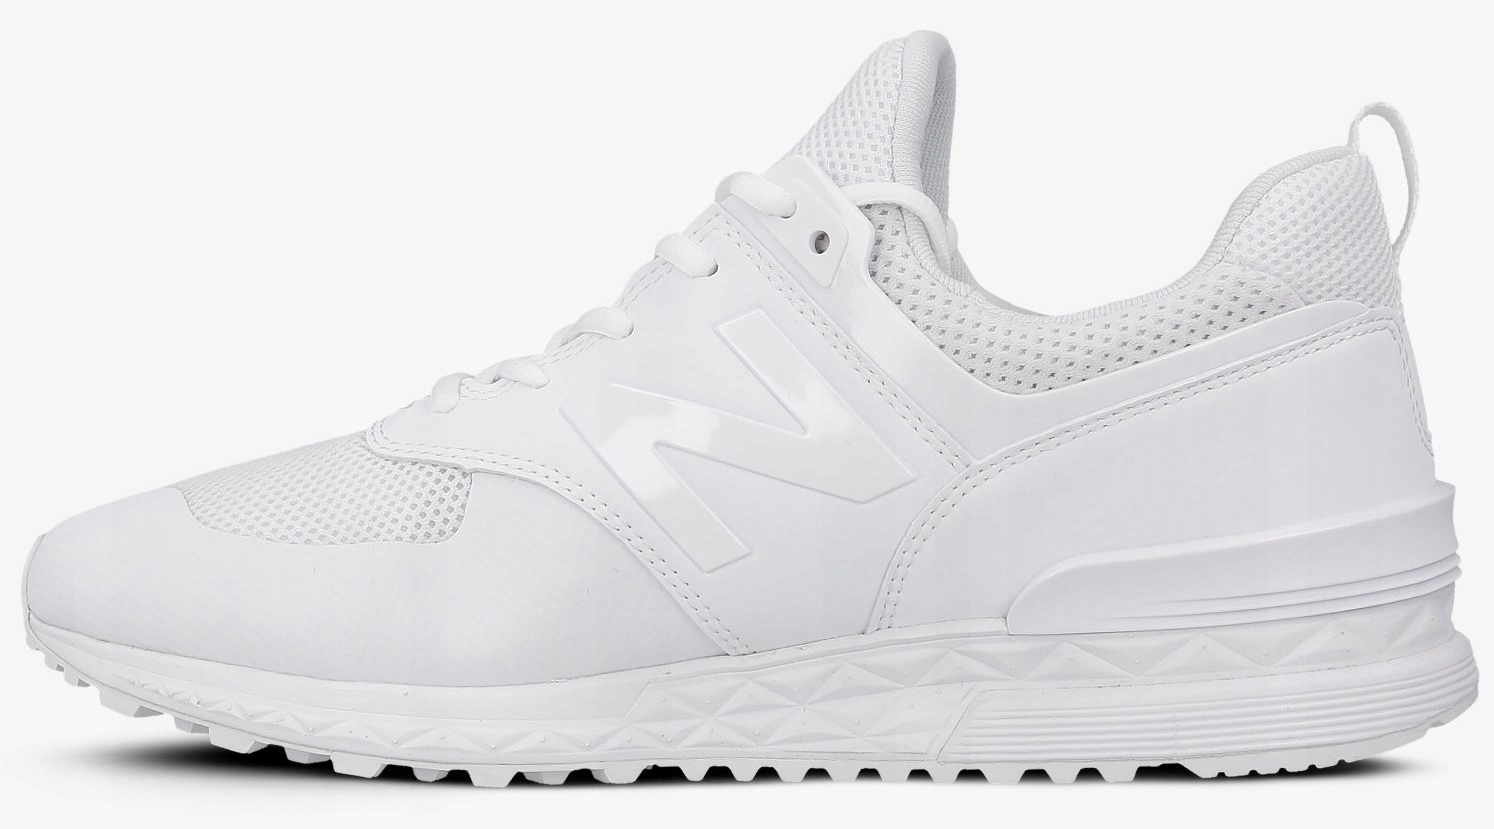 new product 38c55 3f8d3 44,5 BUTY NEW BALANCE MS574SWT BIAŁE - 7494759169 ...